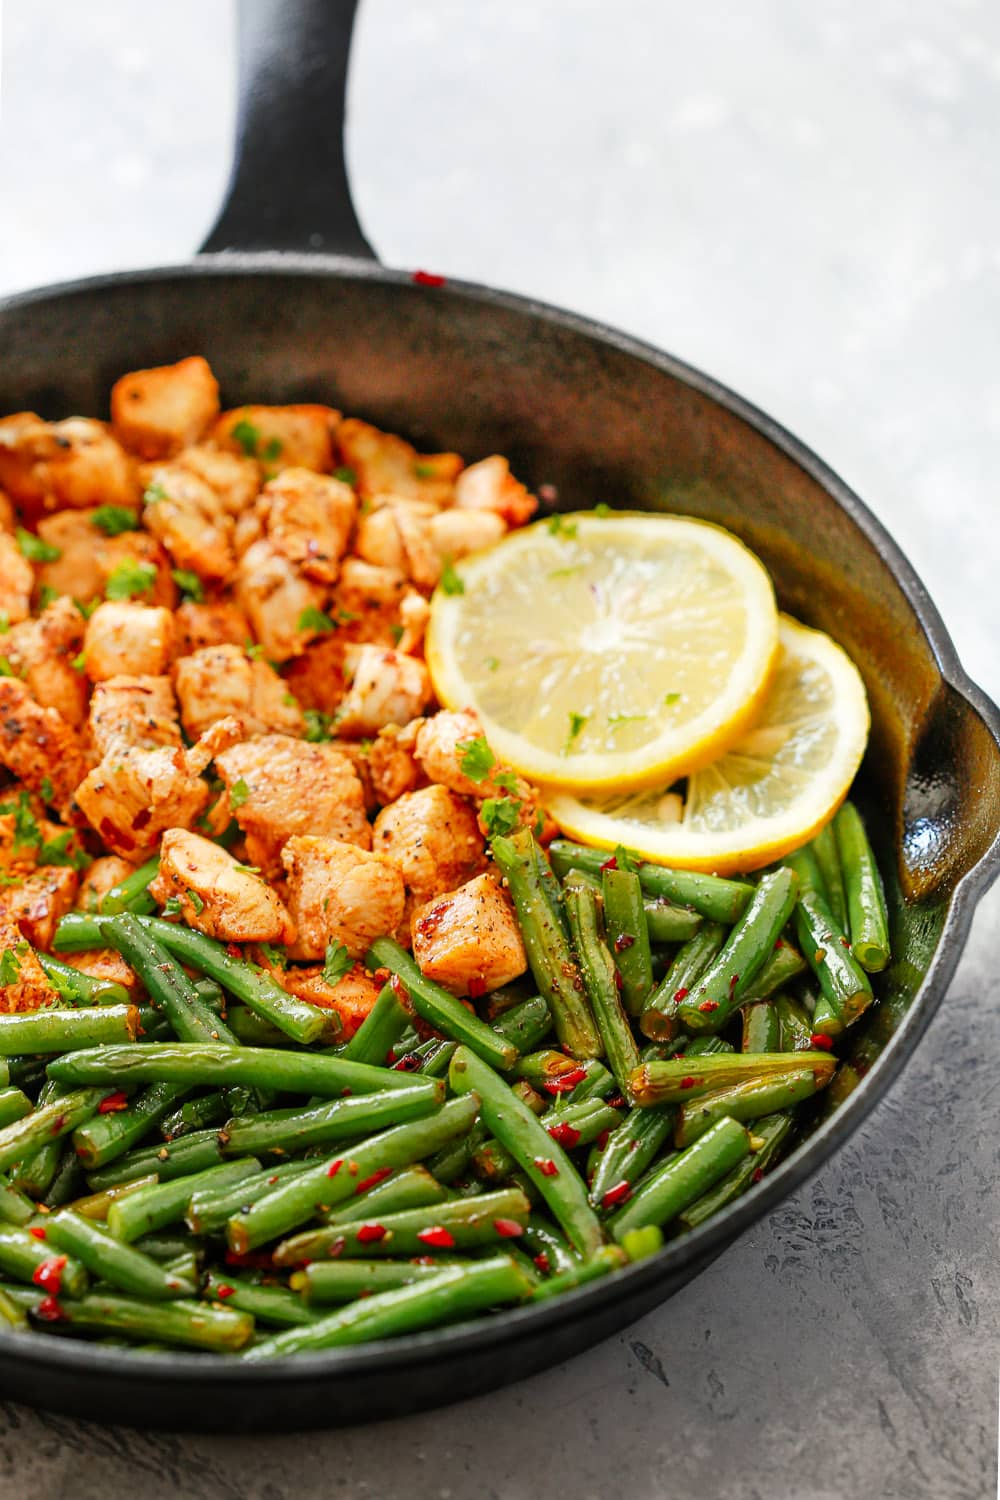 Spicy Green Beans Chicken Skillet chose-up shot